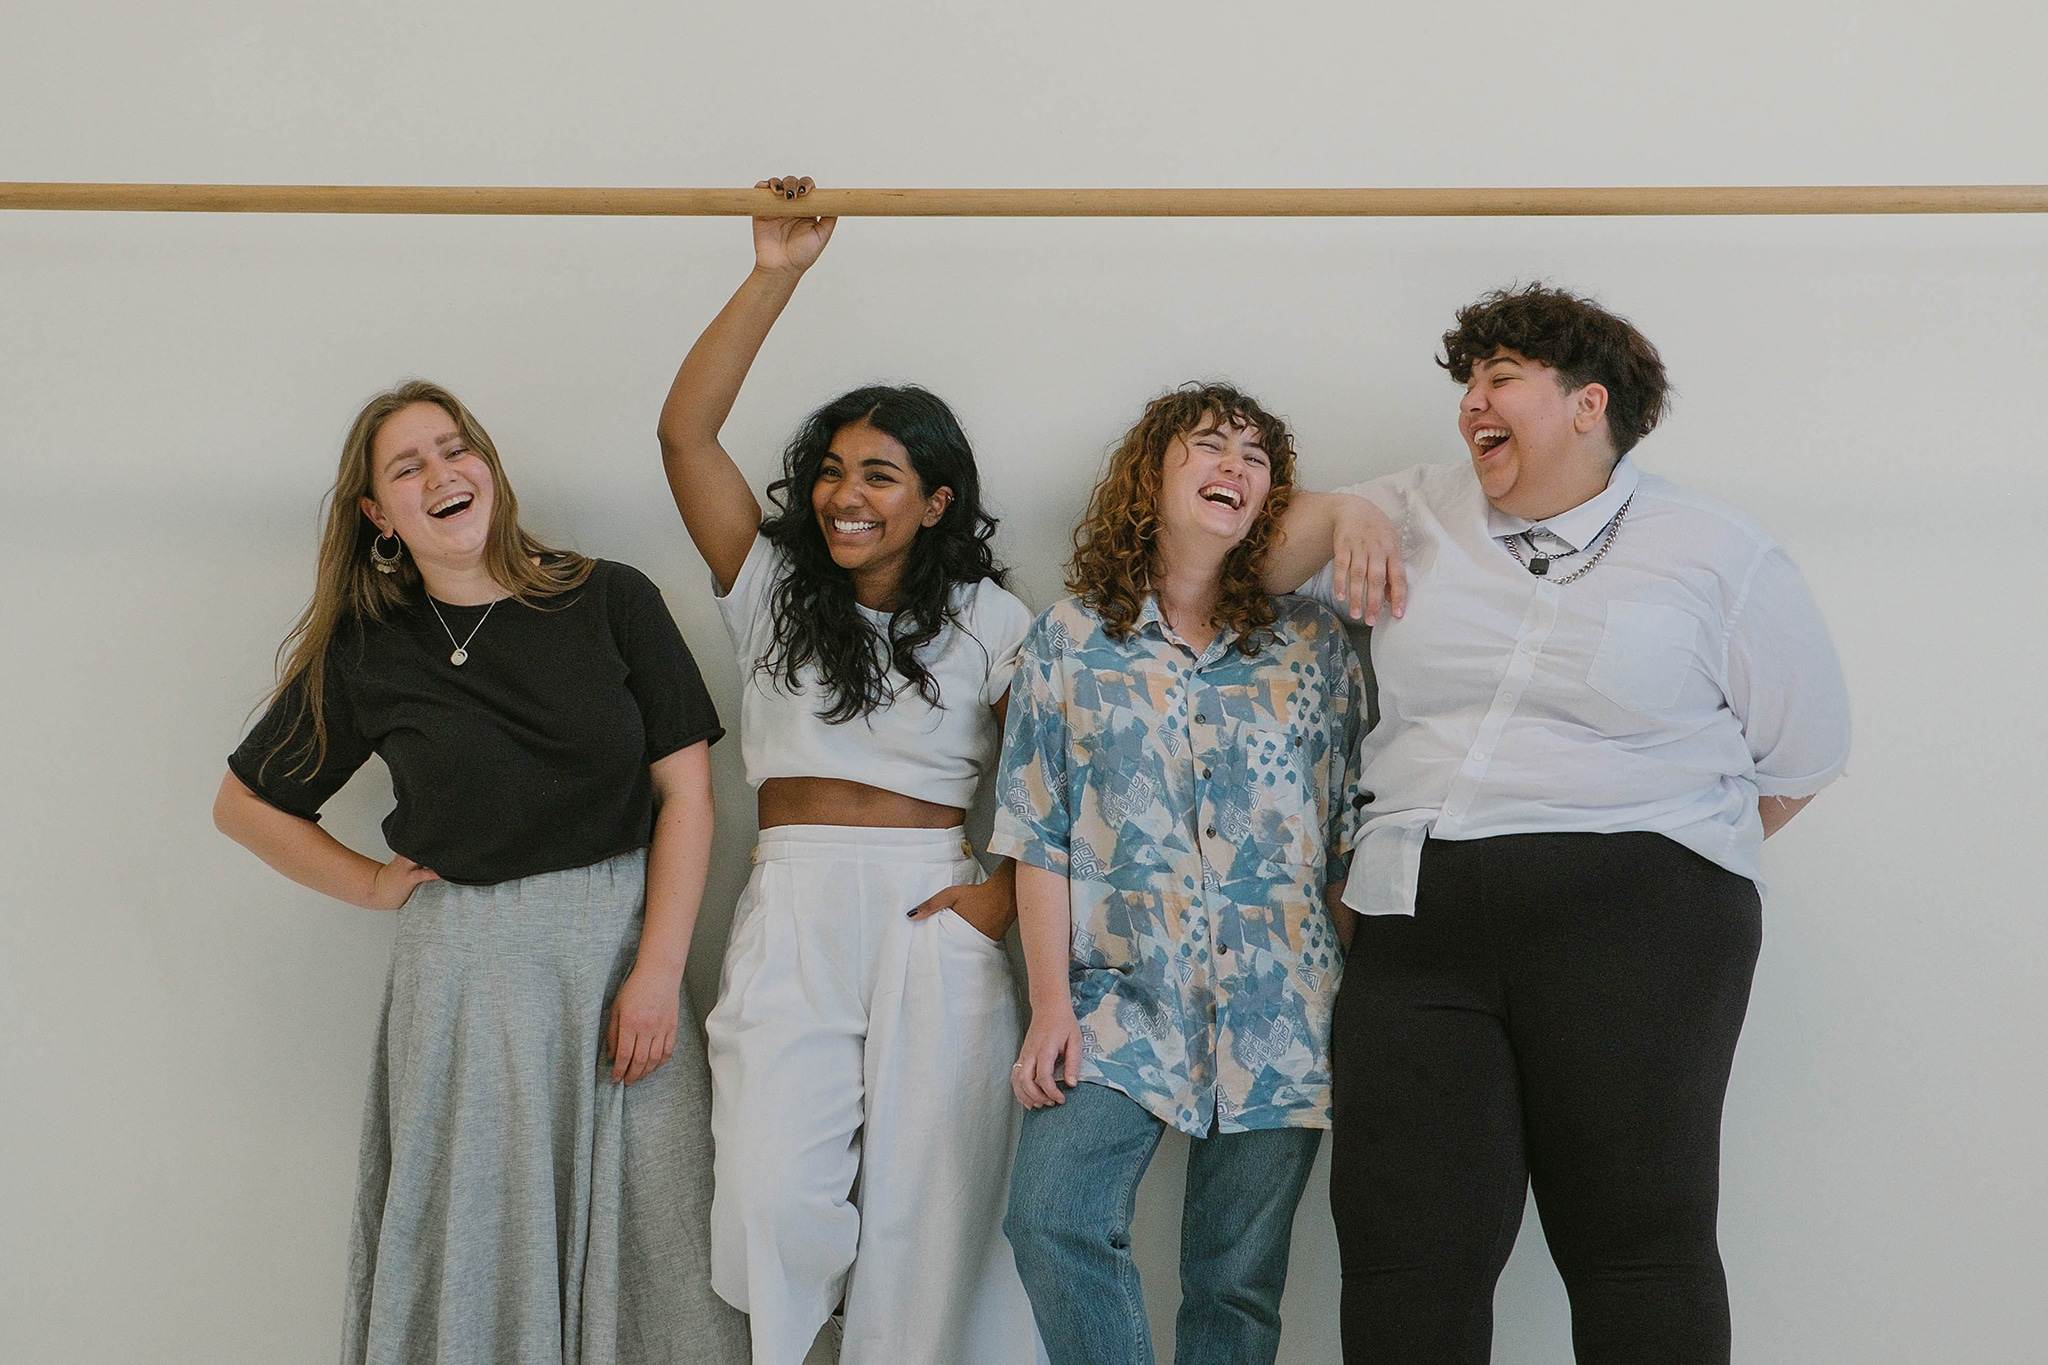 Four women laughing together in a diverse and inclusive workplace